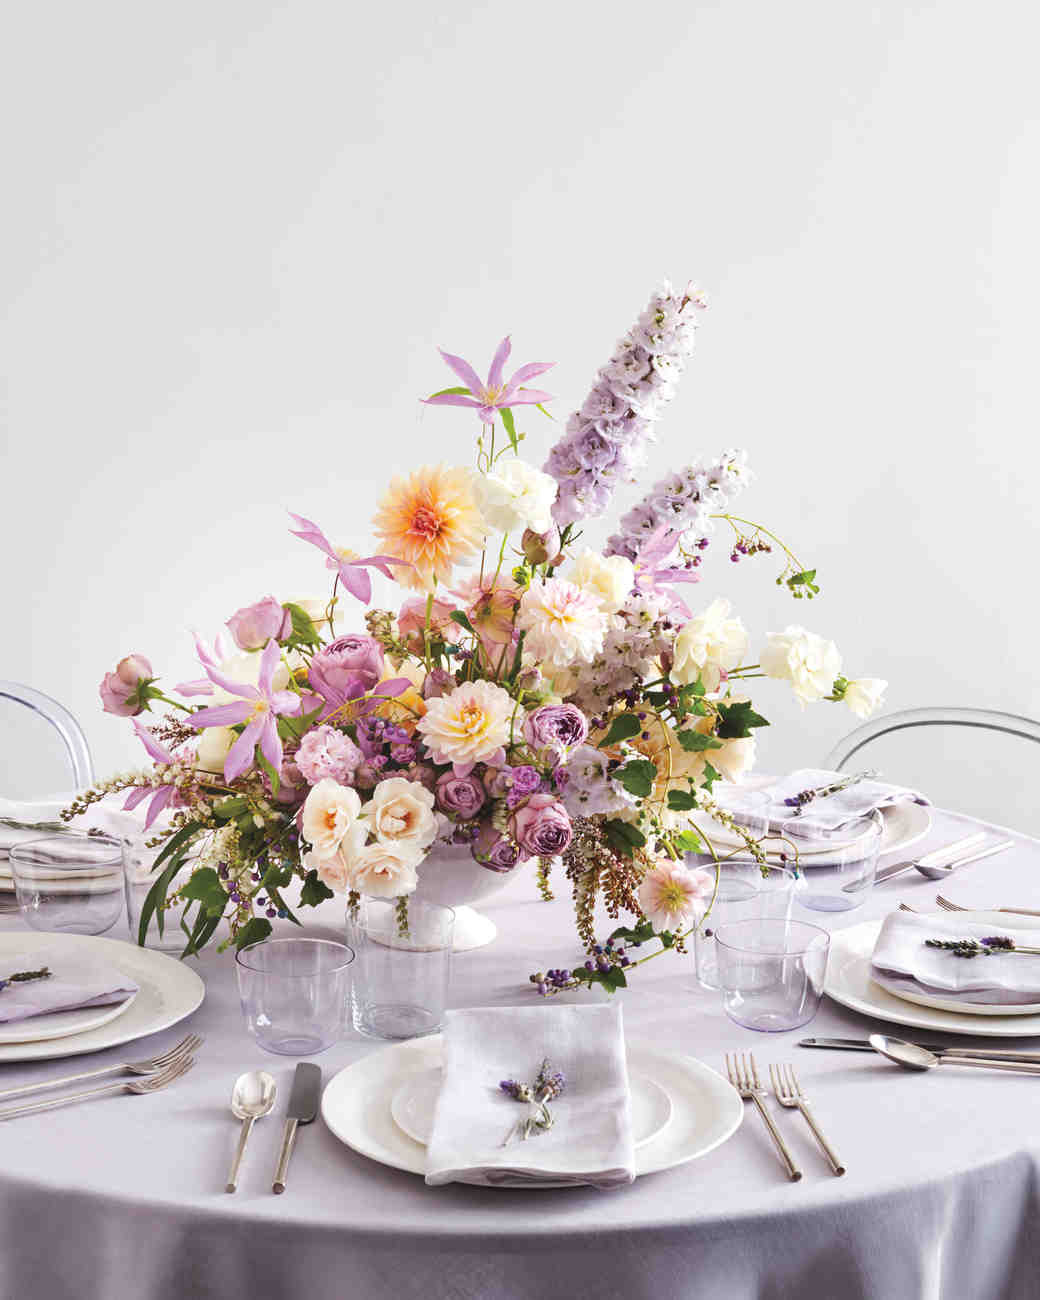 Best ideas about DIY Centerpieces For Weddings . Save or Pin 23 DIY Wedding Centerpieces We Love Now.